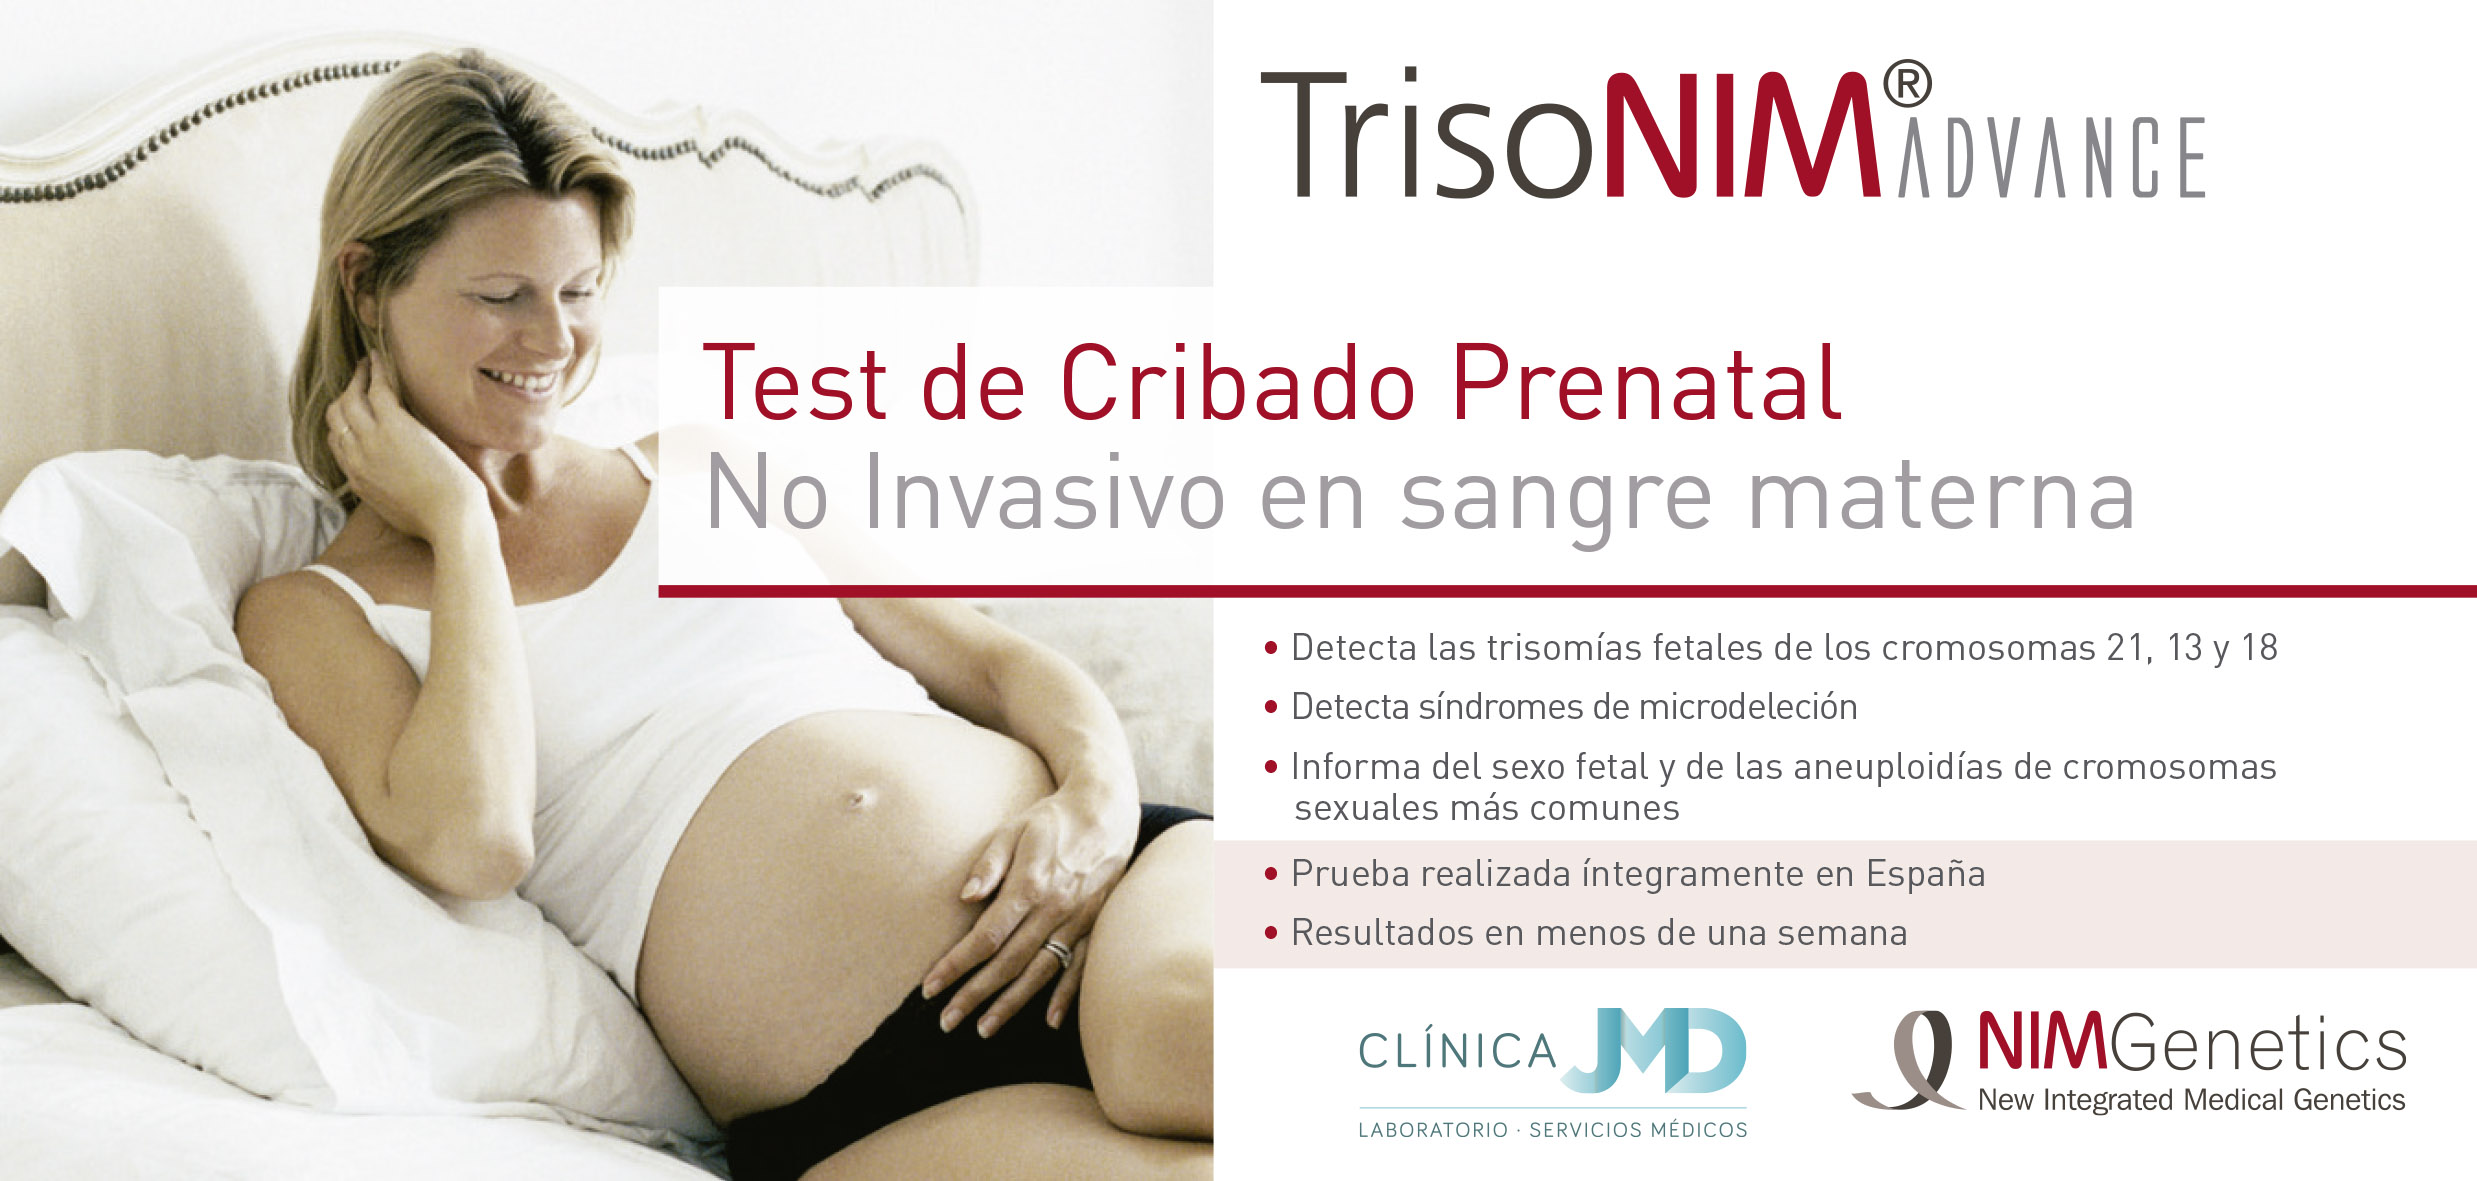 TRISONIM ADV ESPAÑOL IH new-1